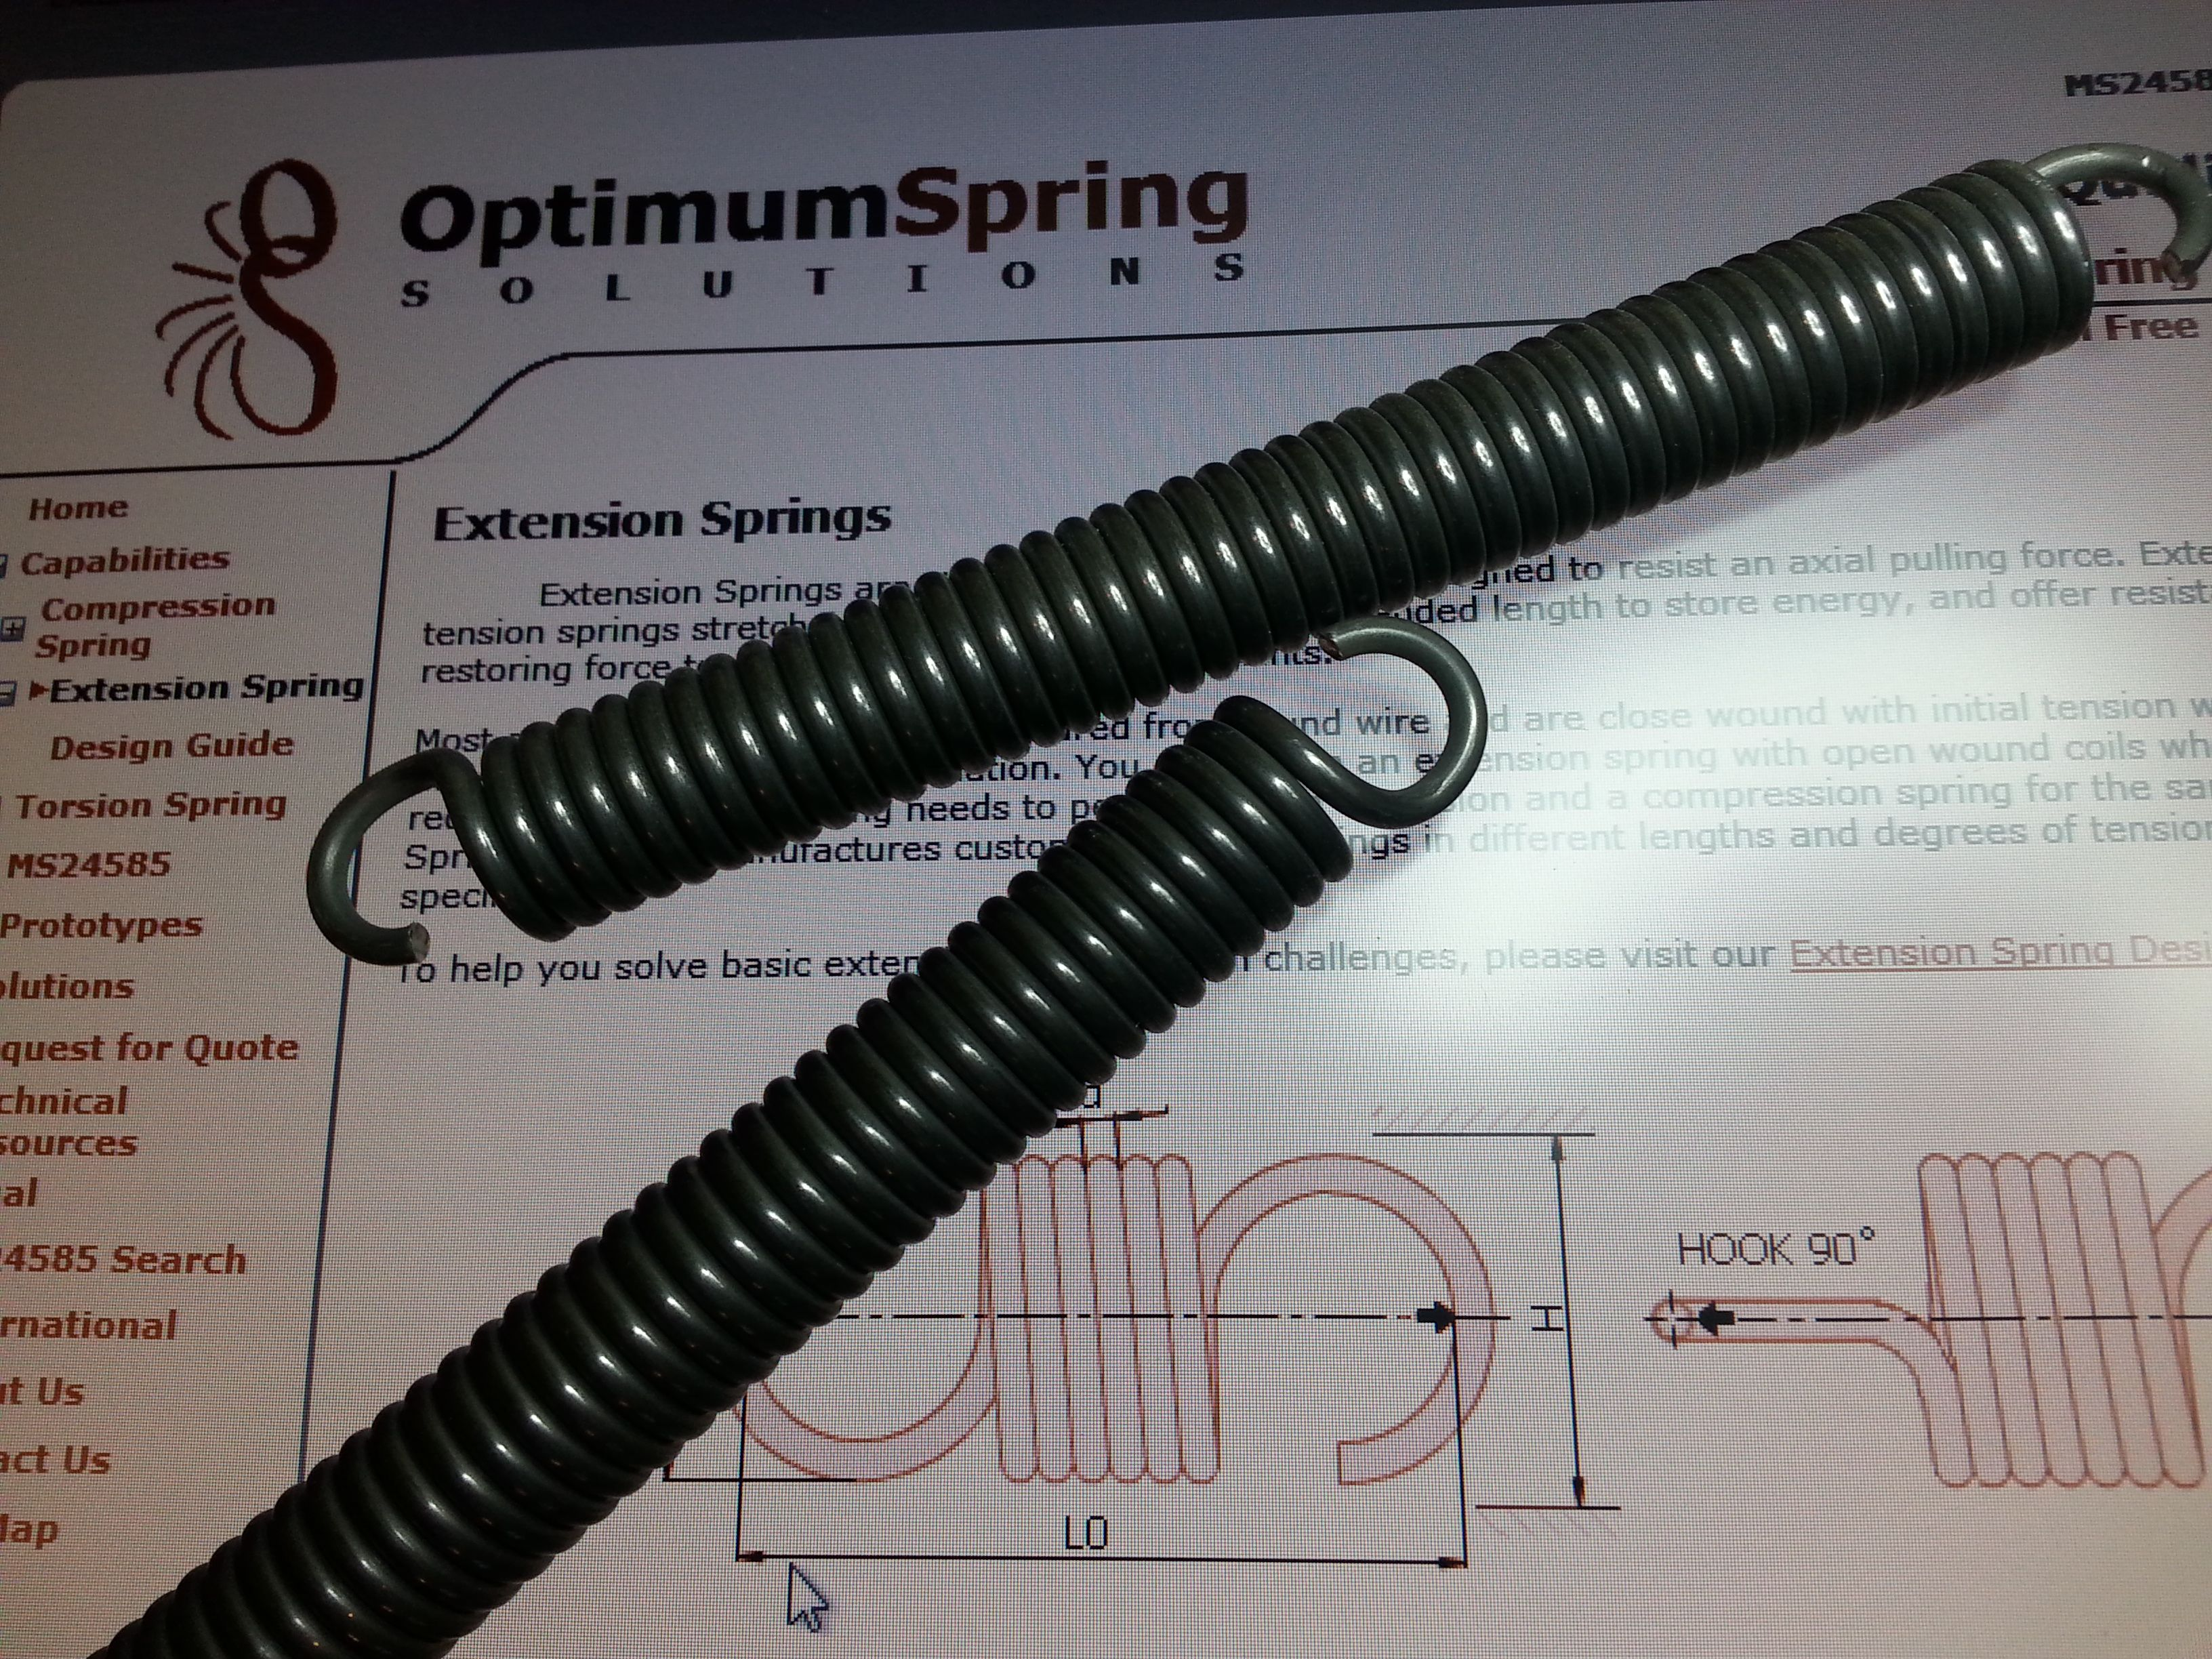 Pin By Optimum Spring On Extension Springs Garage Door Springs Garage Doors For Sale Extension Springs